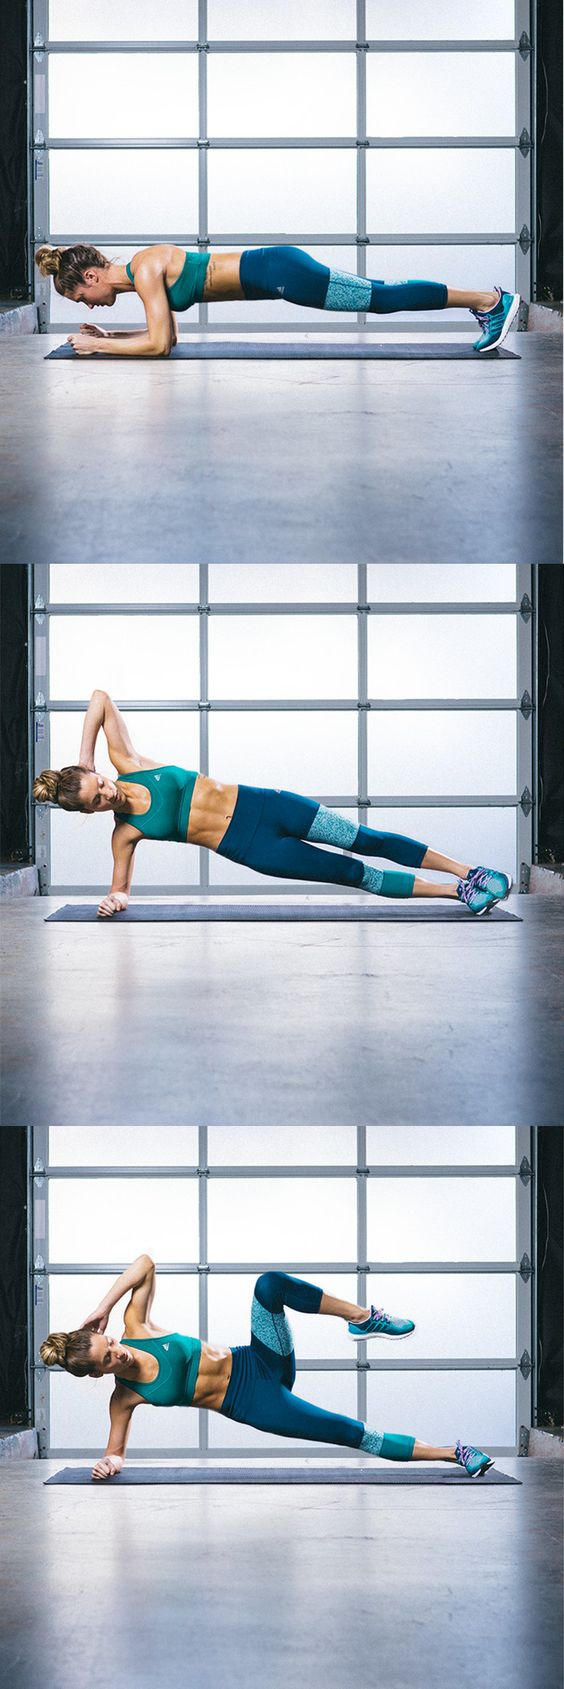 Easy does it doesn't cut it. A side plank is an optimal exercise to tone and strengthen your foundation.Hard work creates a hardcore so you can crush this workout.  Click for more style inspiration.